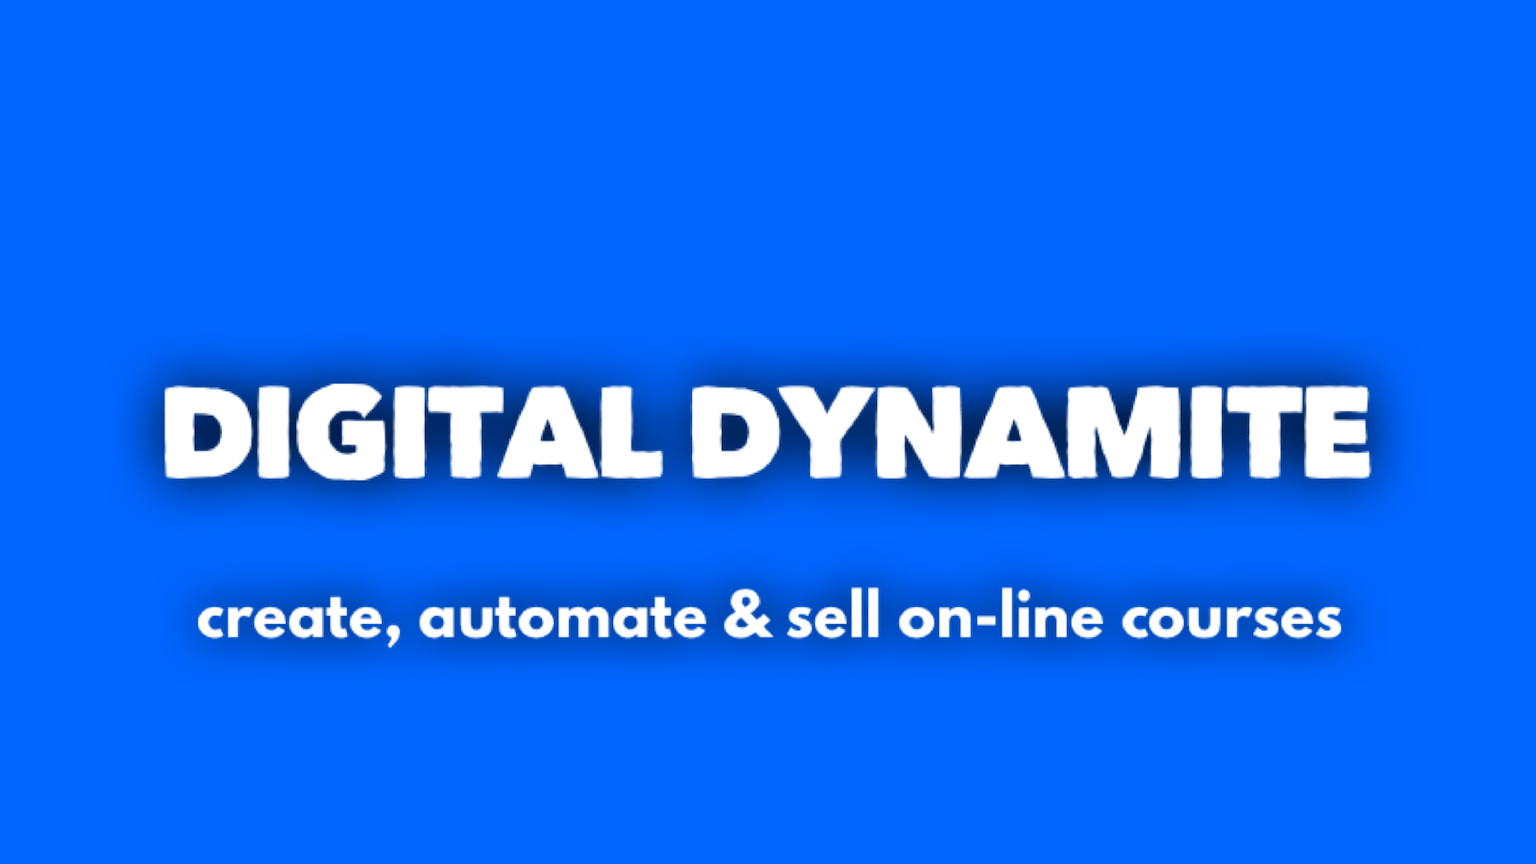 Digital Dynamite: create, automate & sell online courses